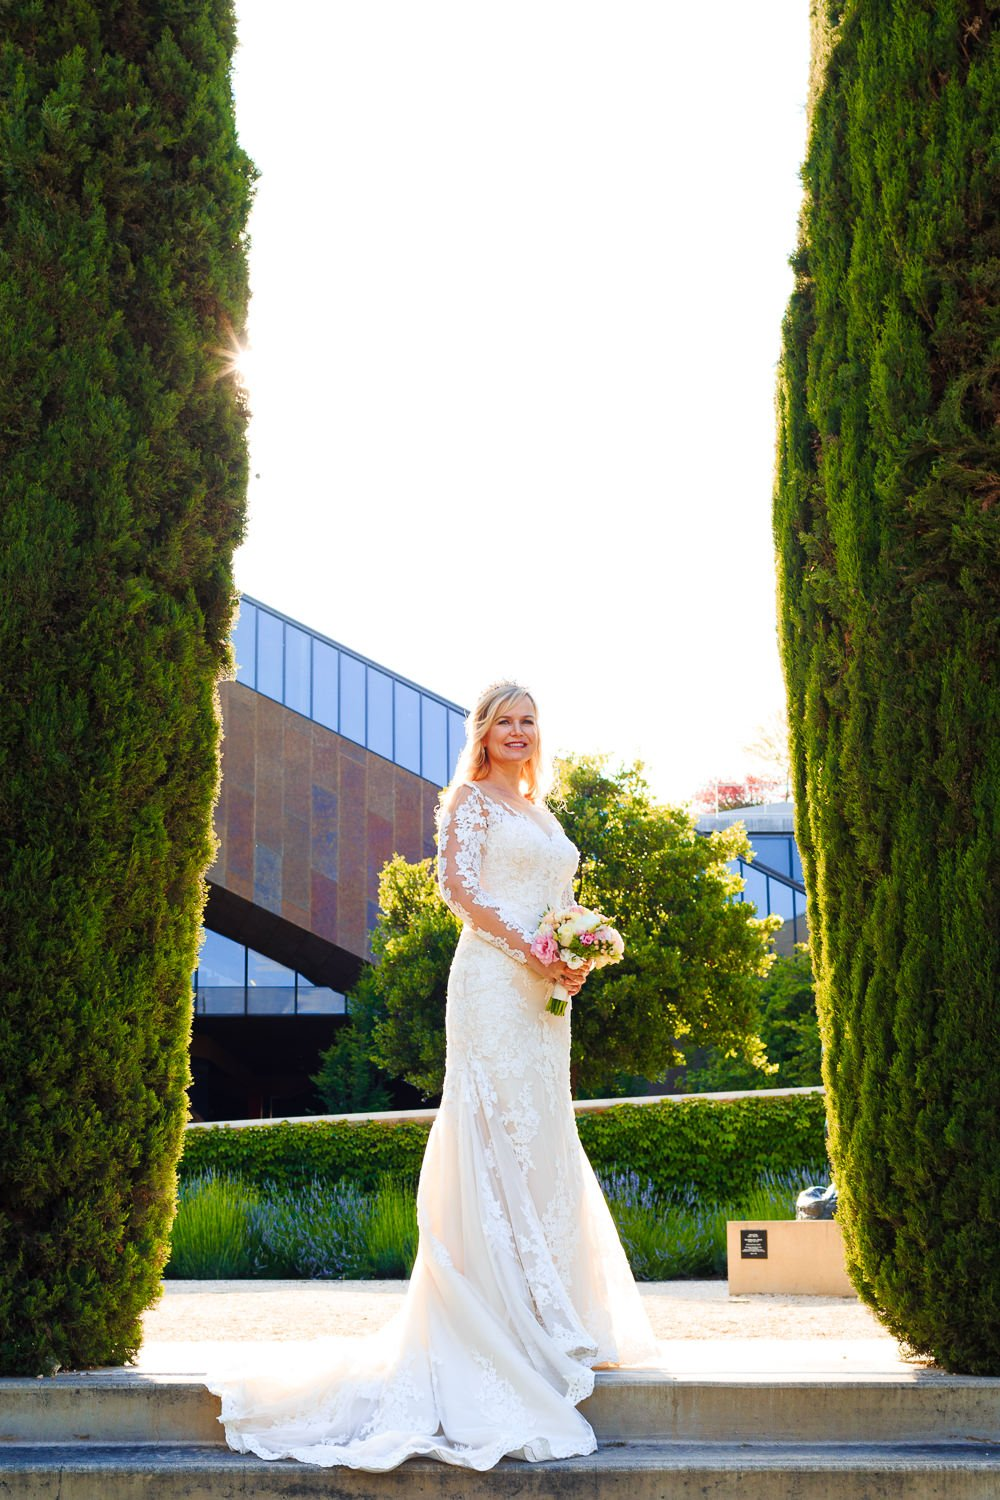 stanford-university-wedding-romantic-portraits-arpit-mehta-san-francisco-photographer-15